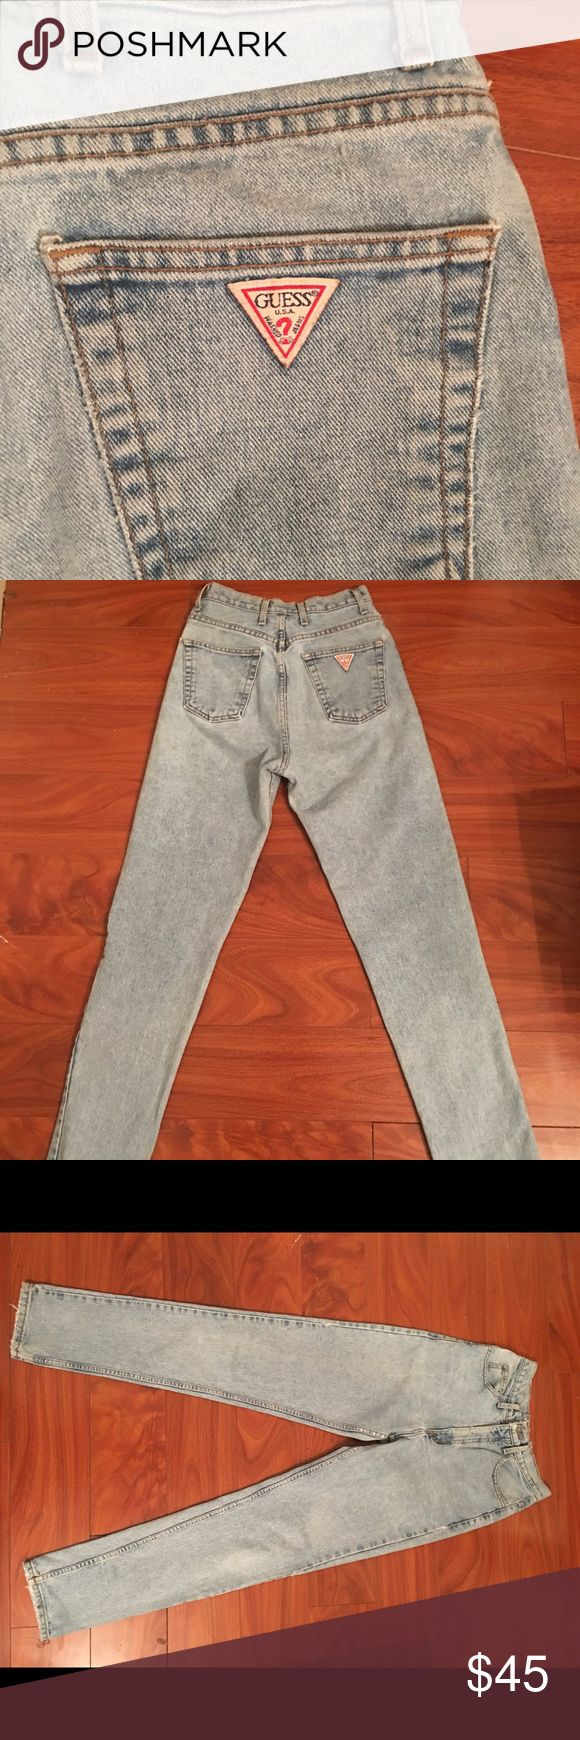 Vintage guess jeans 100% cotton vintage guess jeans very nice wash vintage condition Guess Jeans Straight Leg